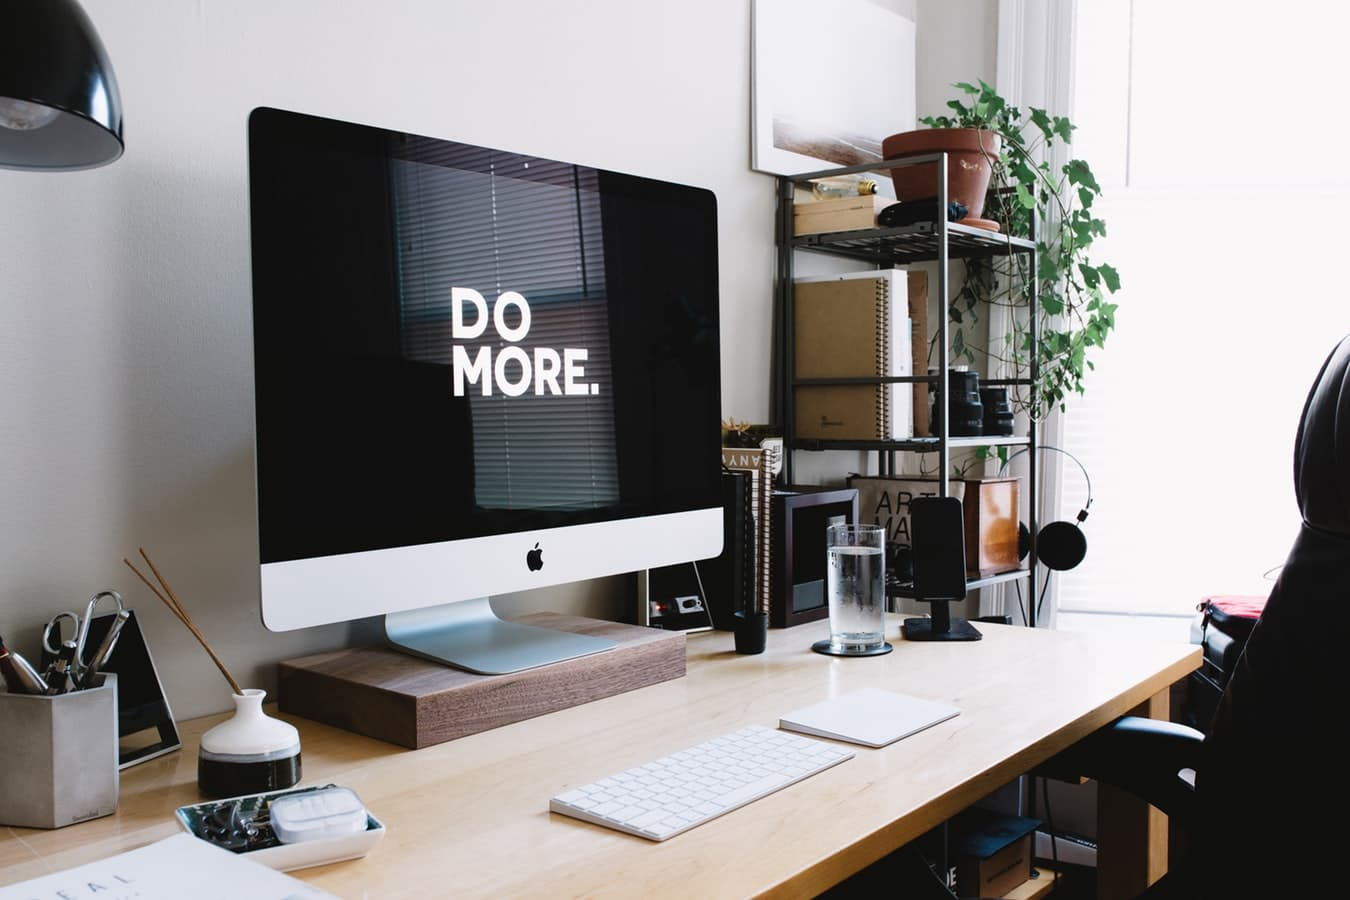 6 Minimalism Tricks to Help You Focus and be Productive